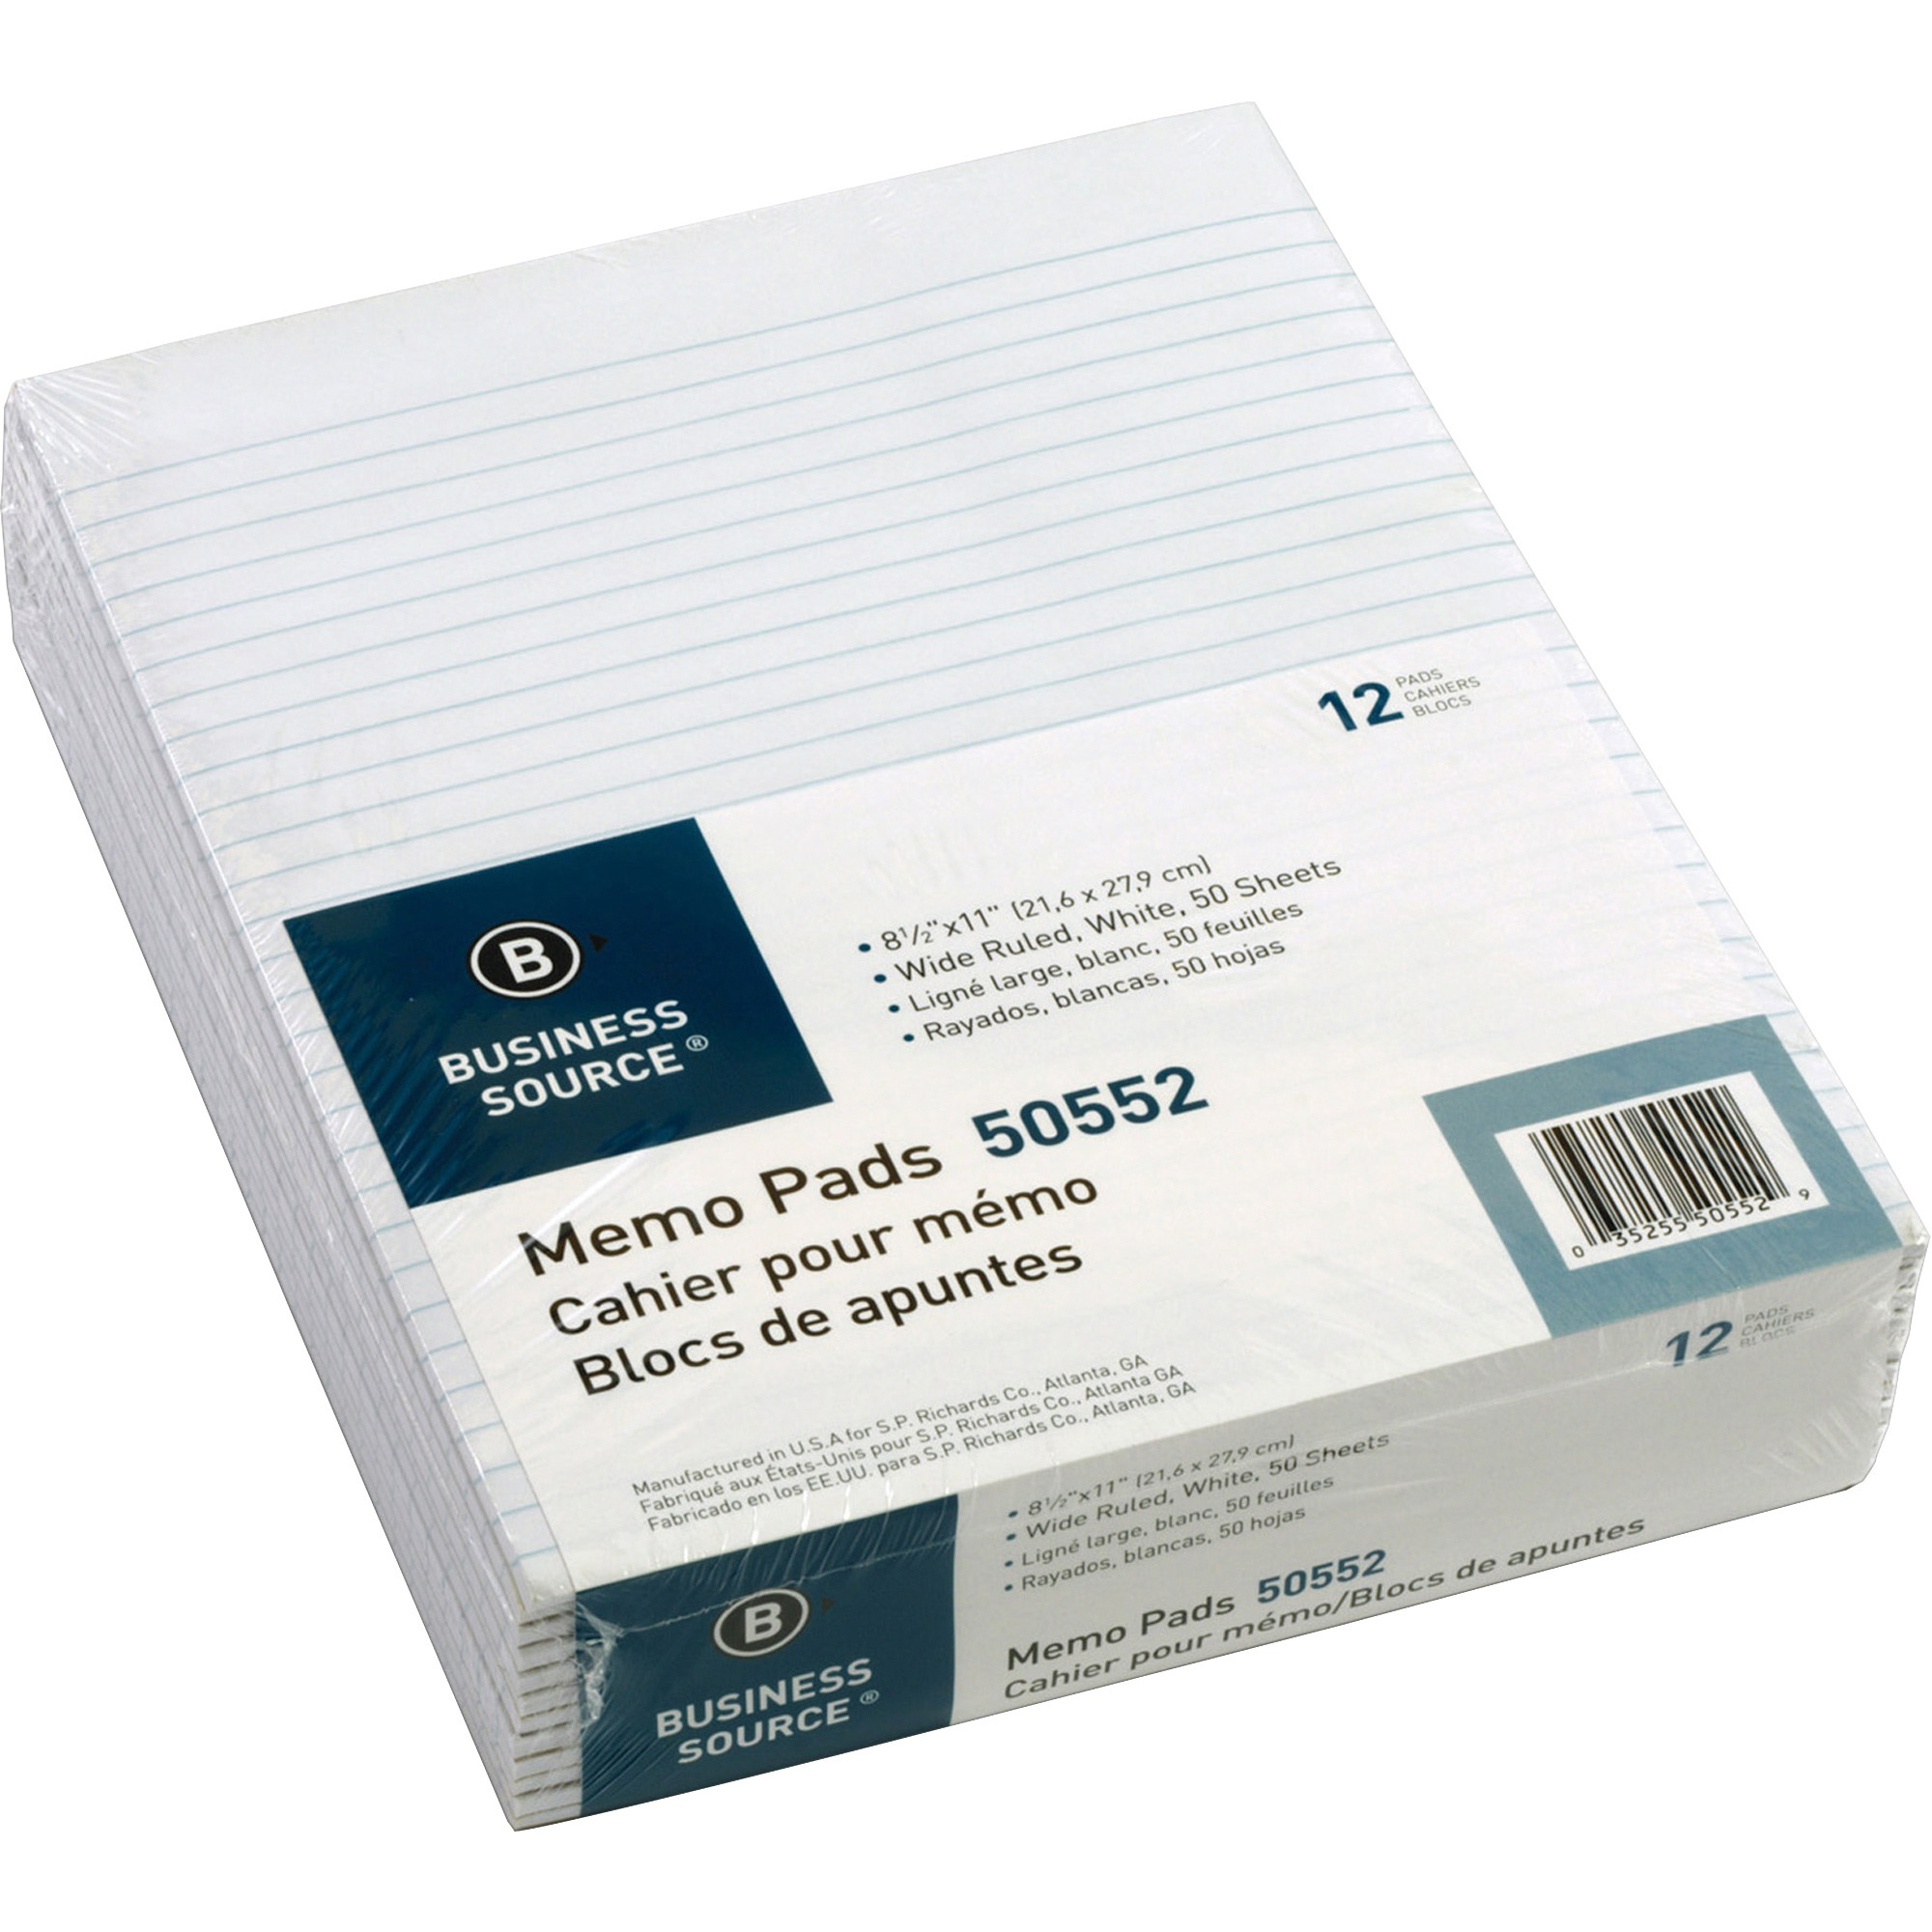 Business Source, BSN50552, Glued Top Ruled Memo Pads - Letter, 12 / Dozen